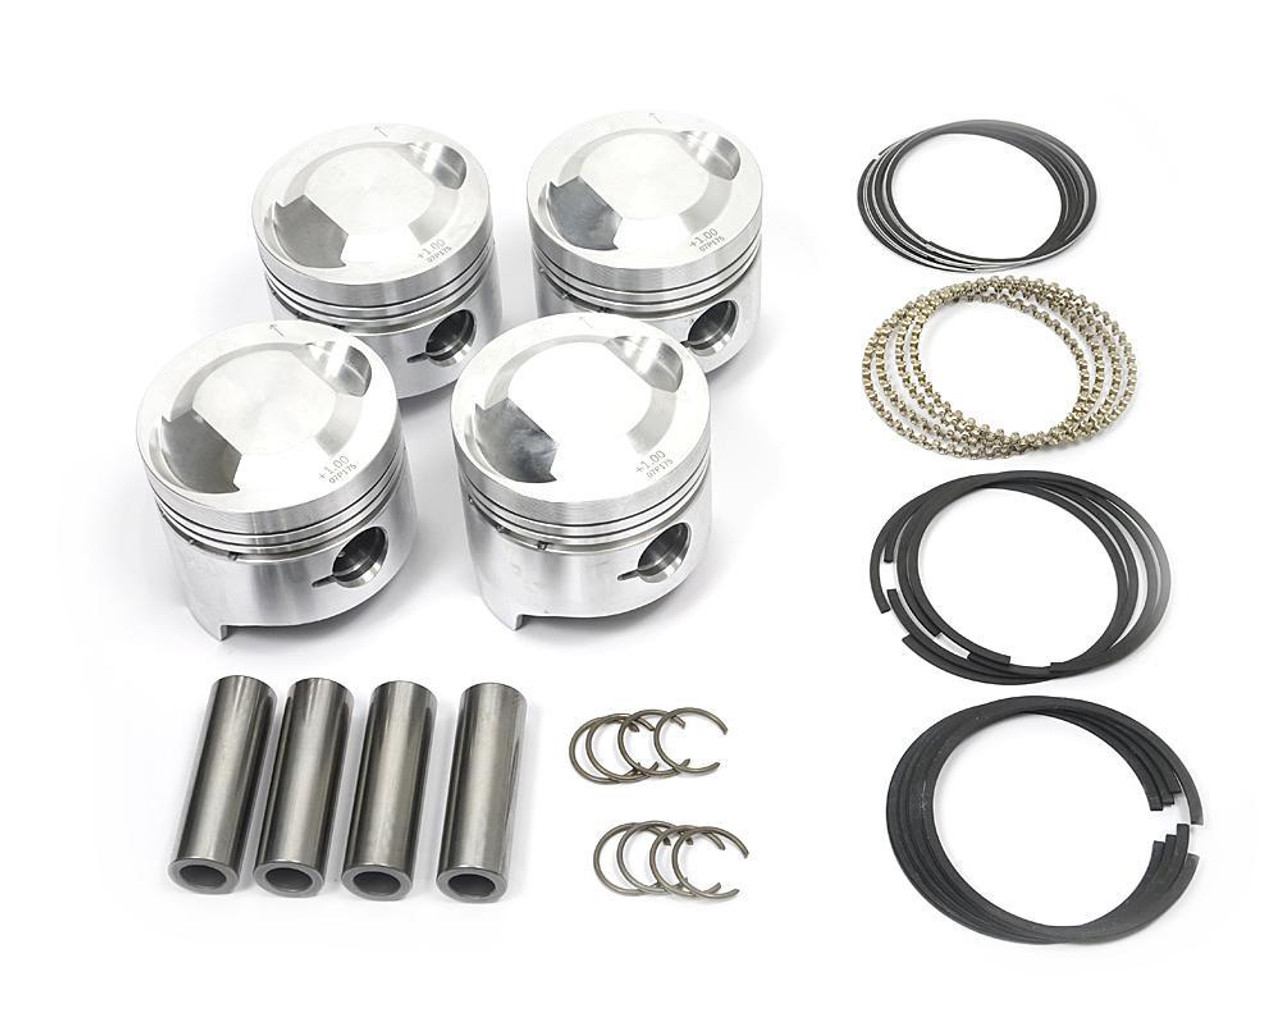 Piston Set - 1756 and 1995cc - 9.8:1 Compression Ratio